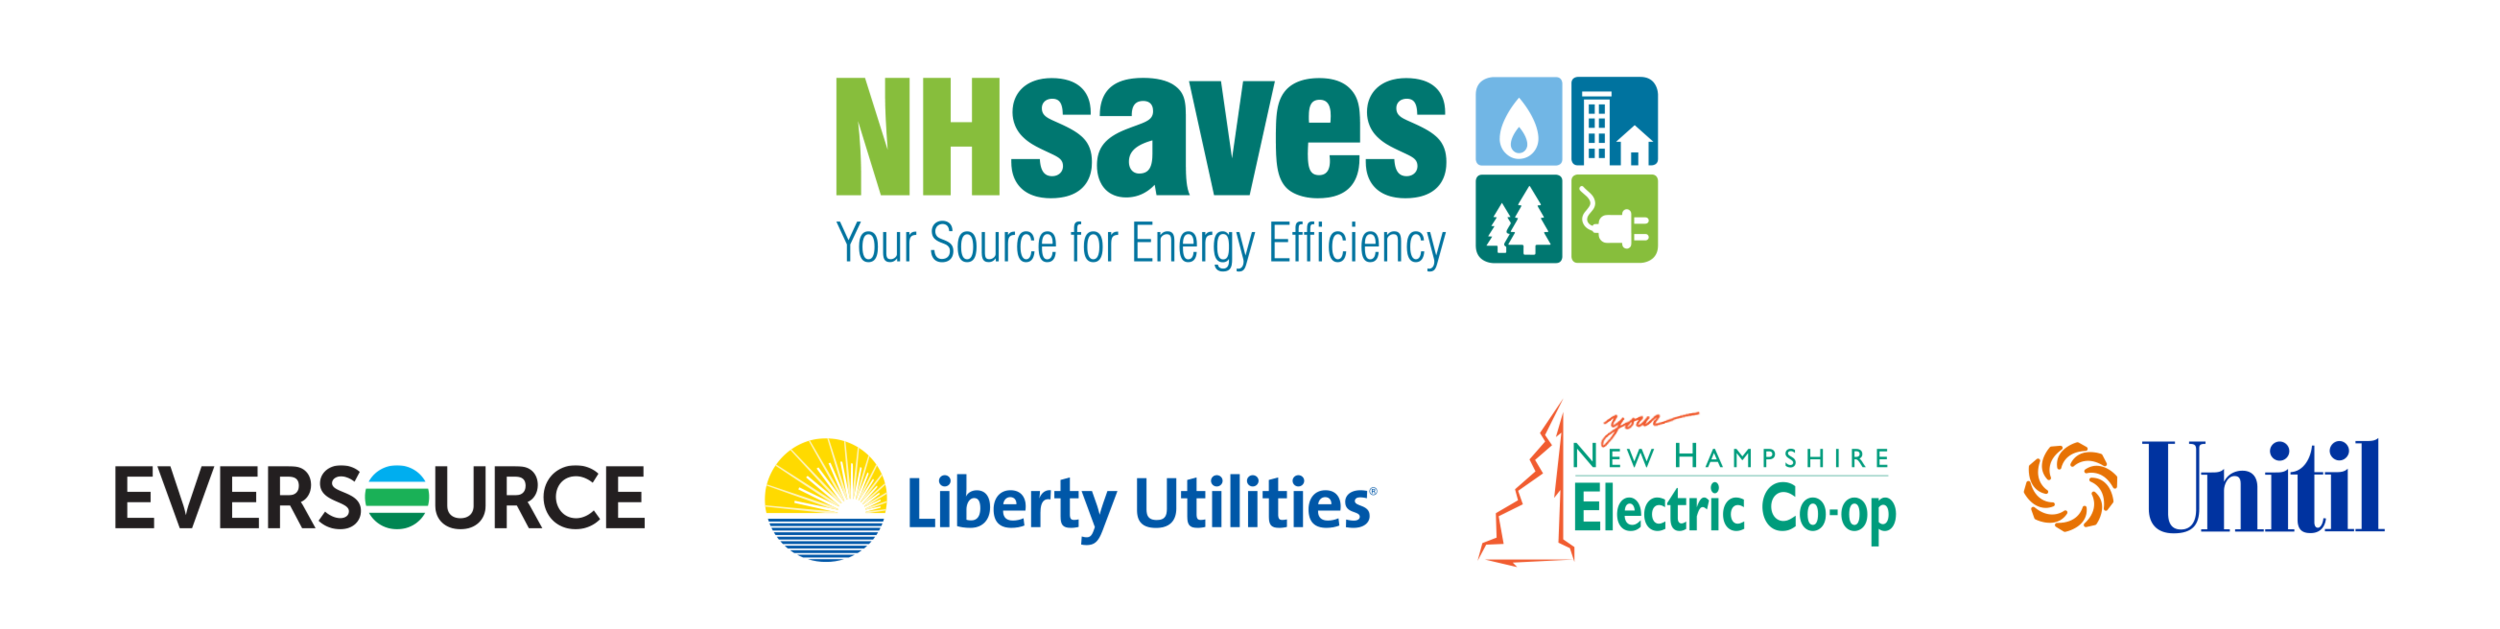 NHSaves-Utilities.png